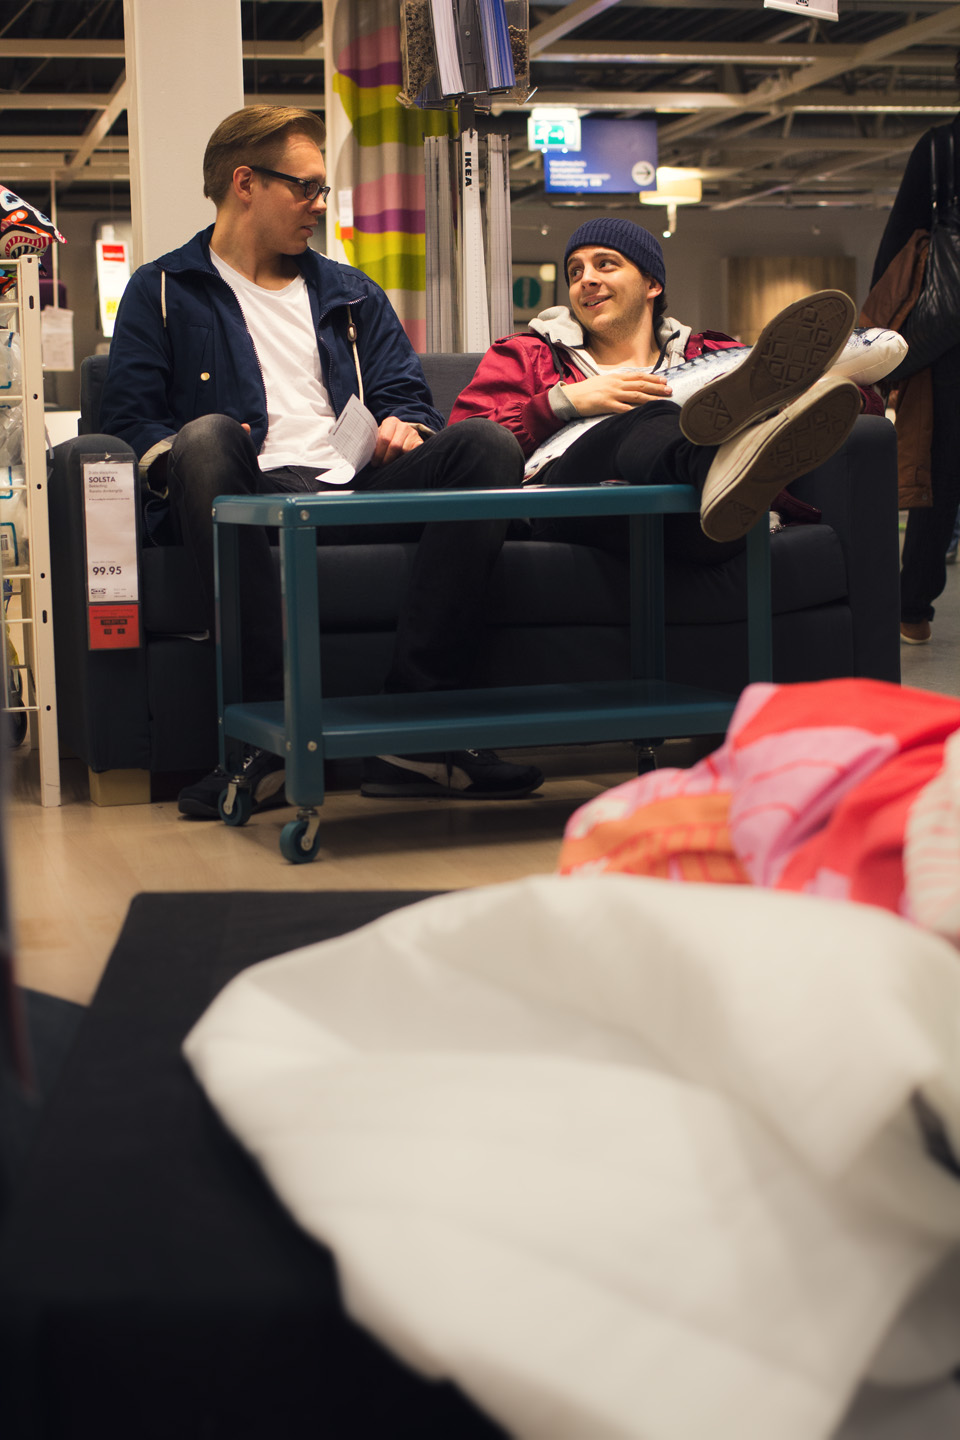 Shopping all day long with this guys at Ikea.